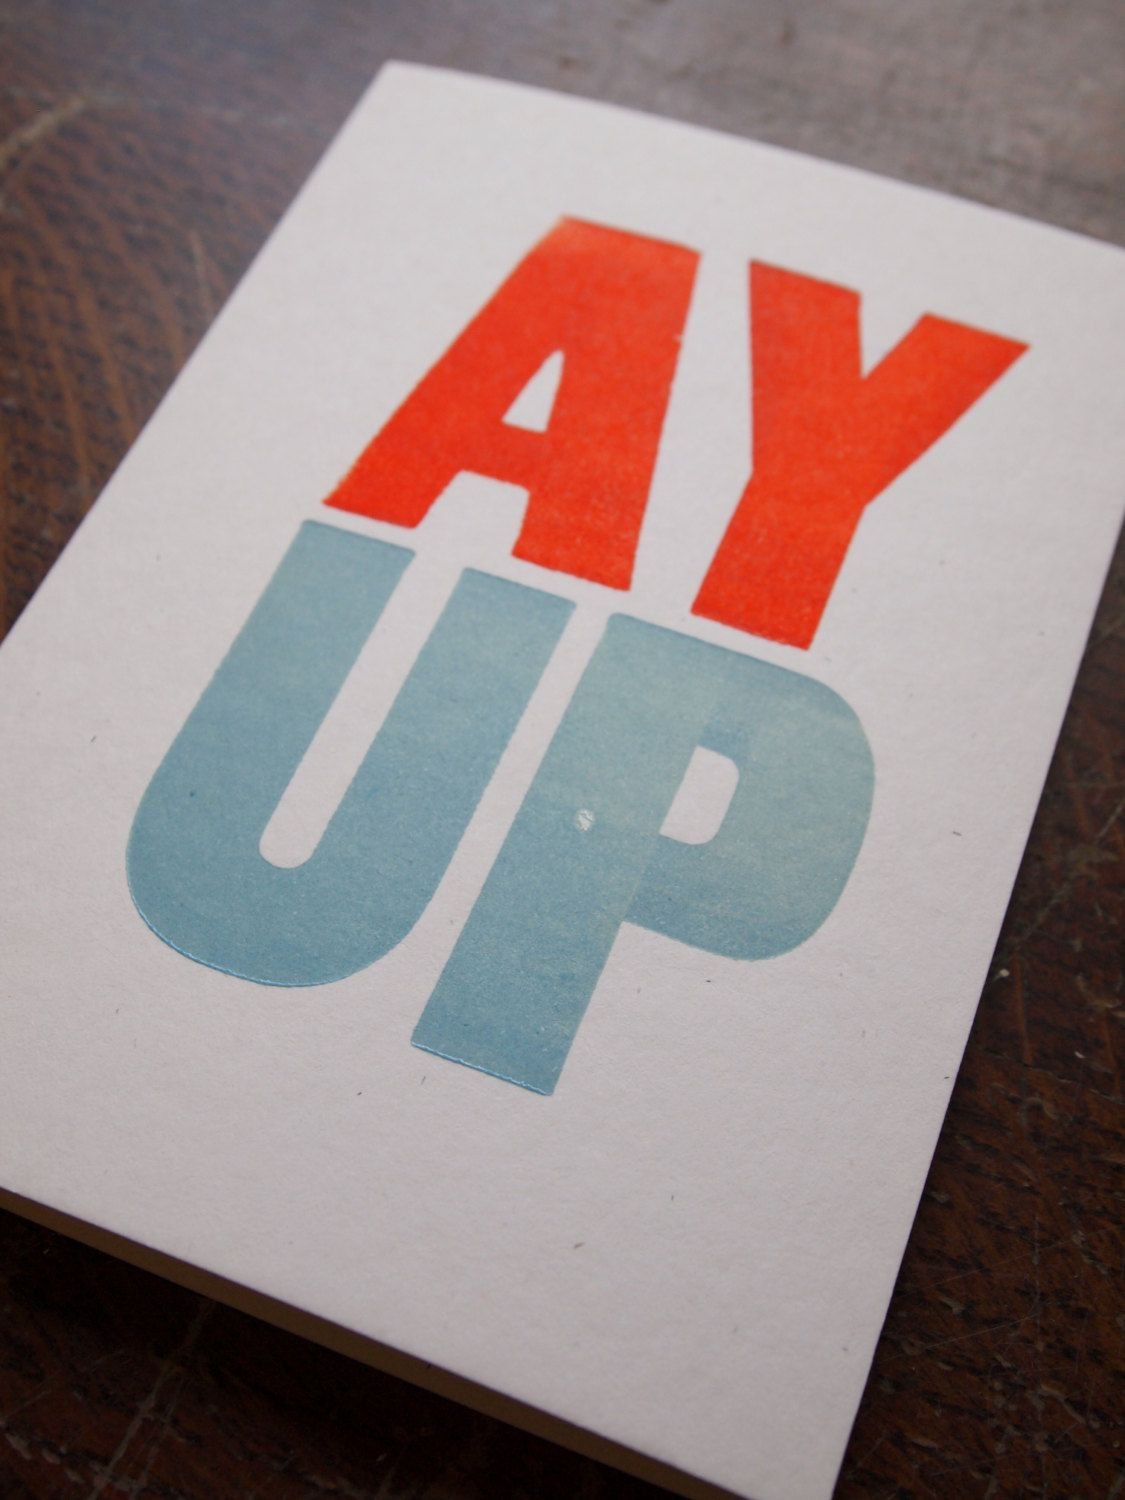 Ay up english uk dialect greeting vintage wood type letterpress card ay up english uk dialect greeting vintage wood type letterpress card by thesmallprintcompany on etsy m4hsunfo